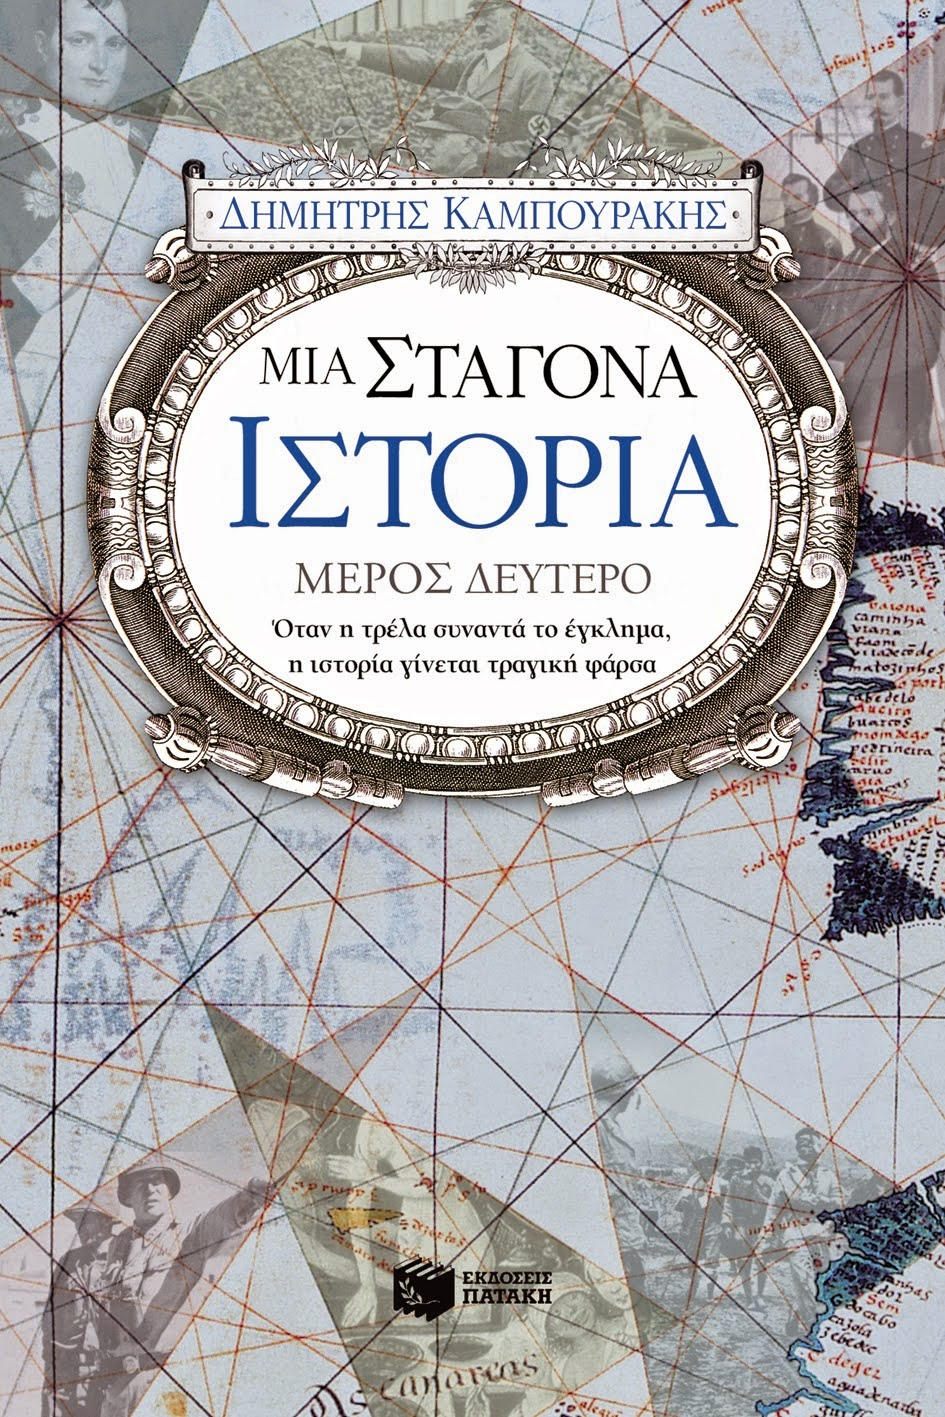 http://www.culture21century.gr/2015/04/book-review_5.html